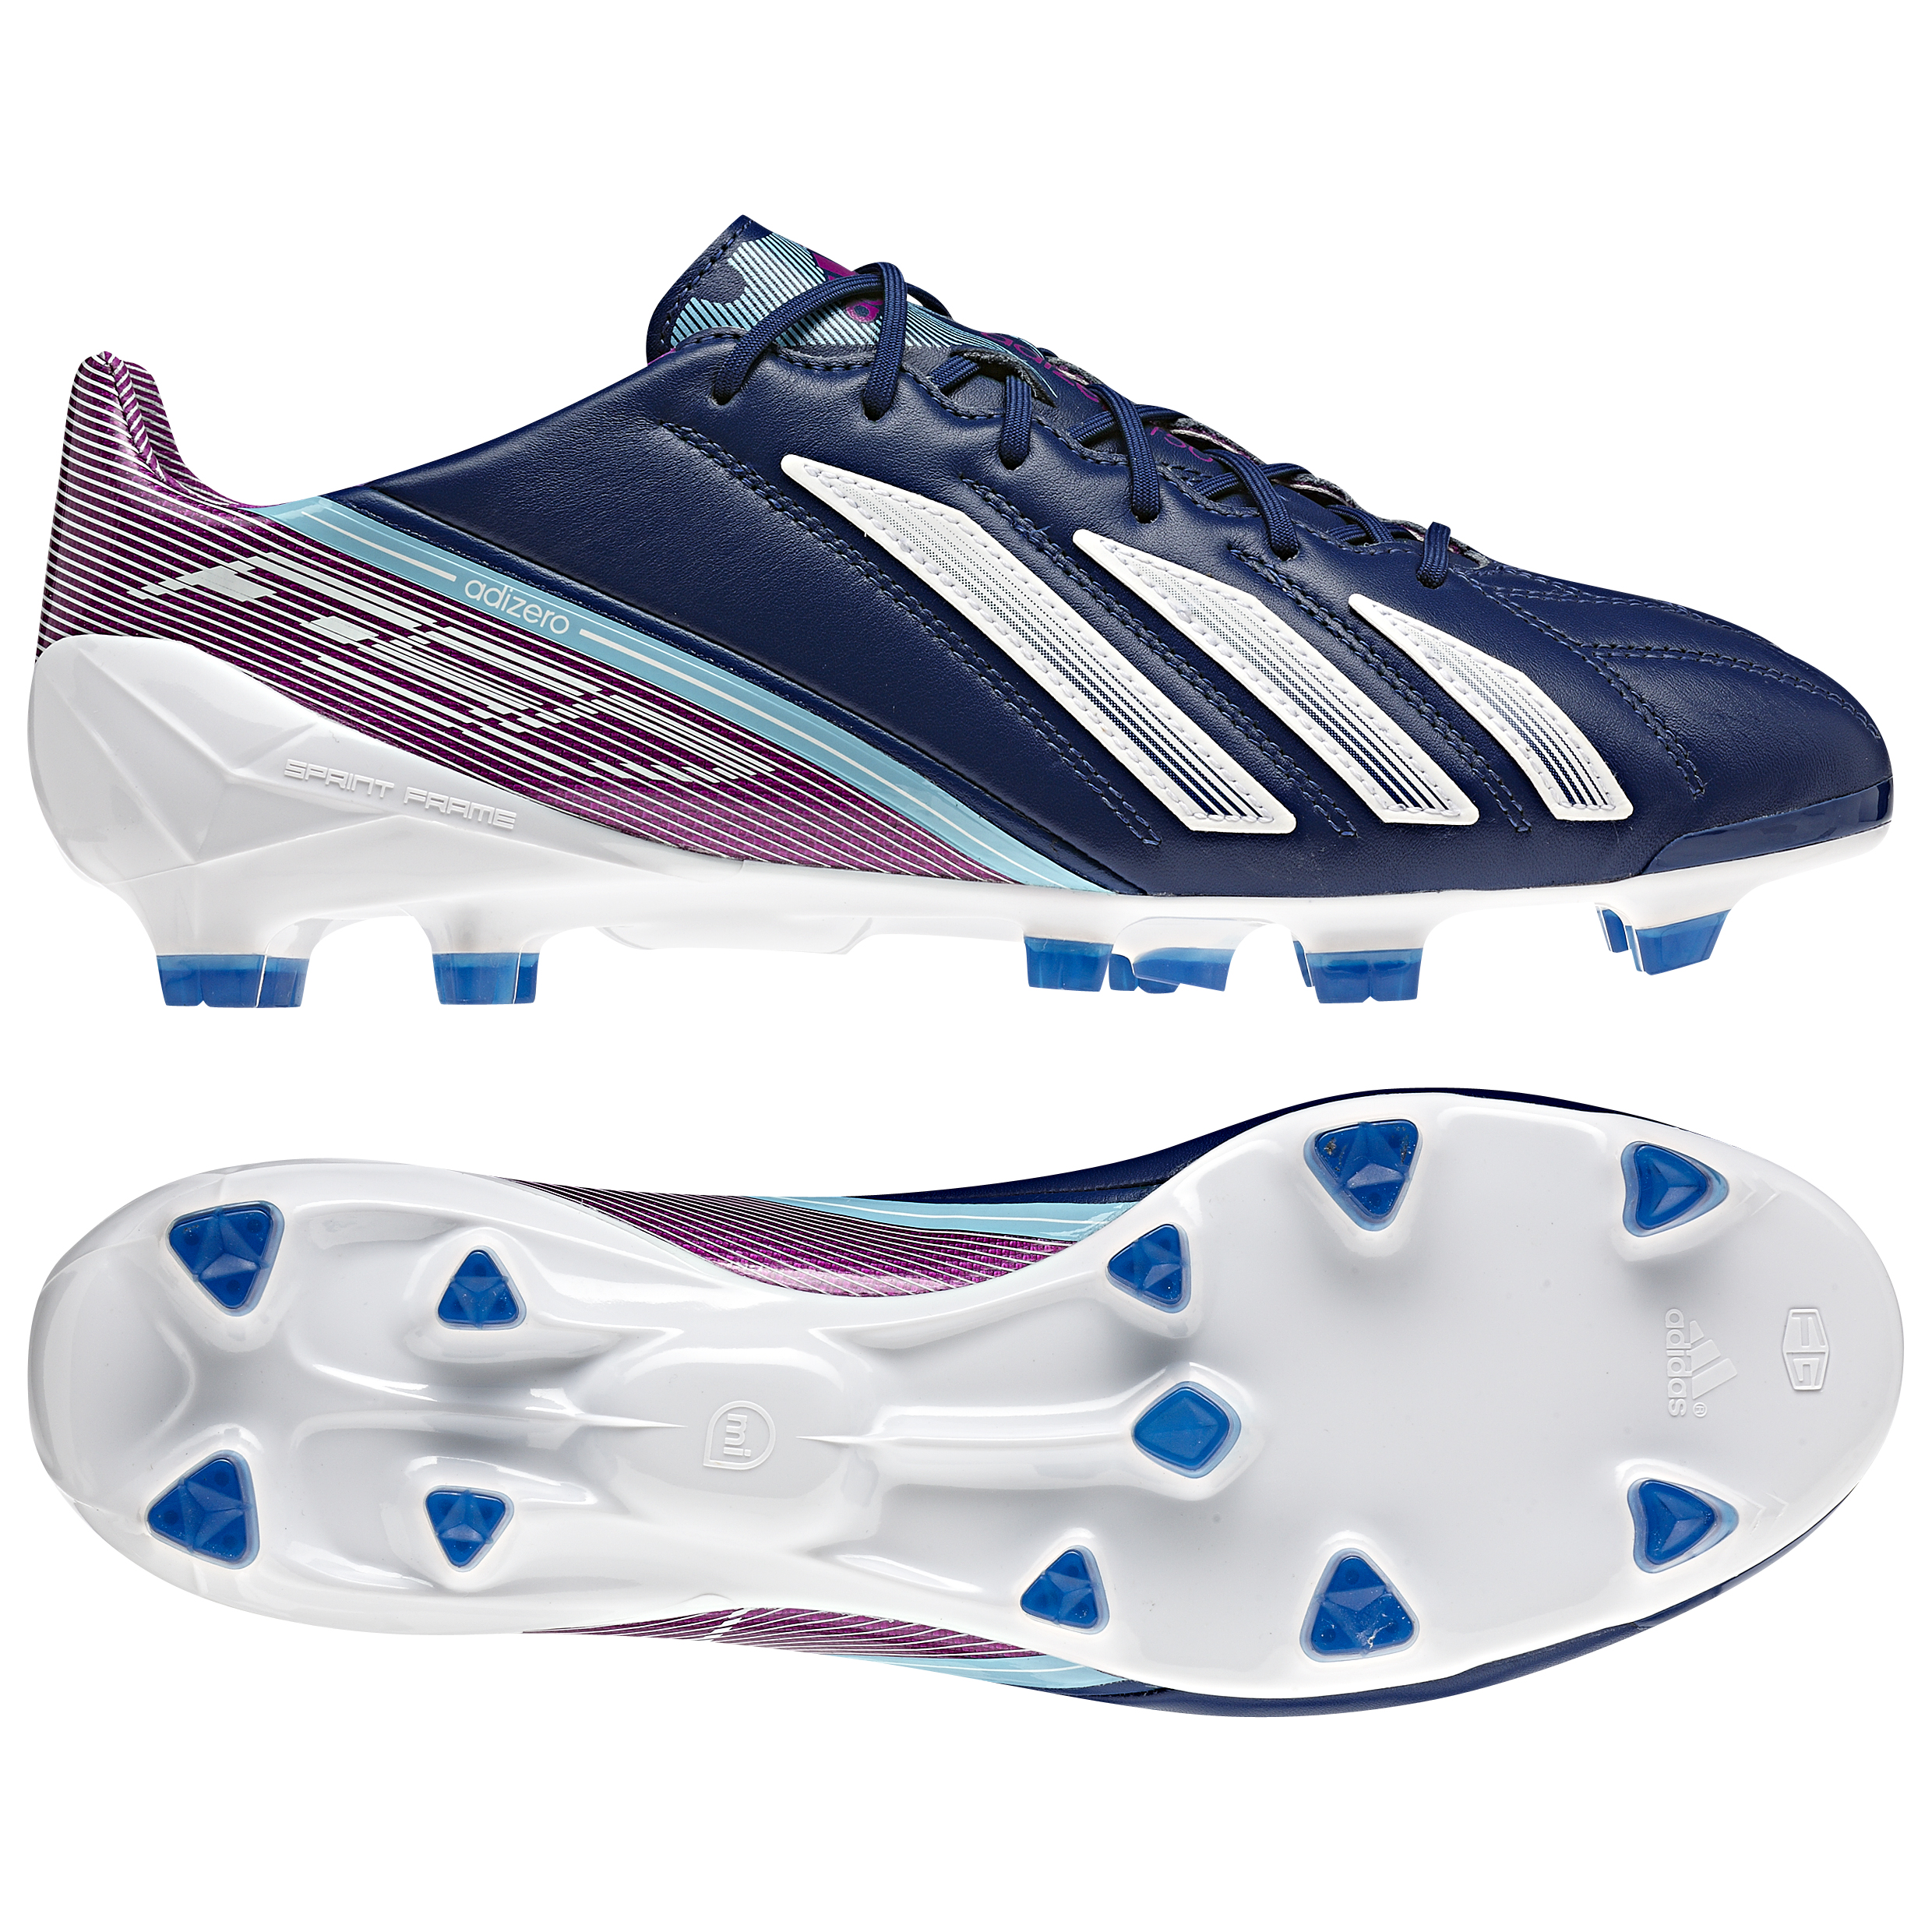 adidas AdiZero F50 TRX Firm Ground Leather Football Boots - Dark Blue/Running White/Vivid Pink